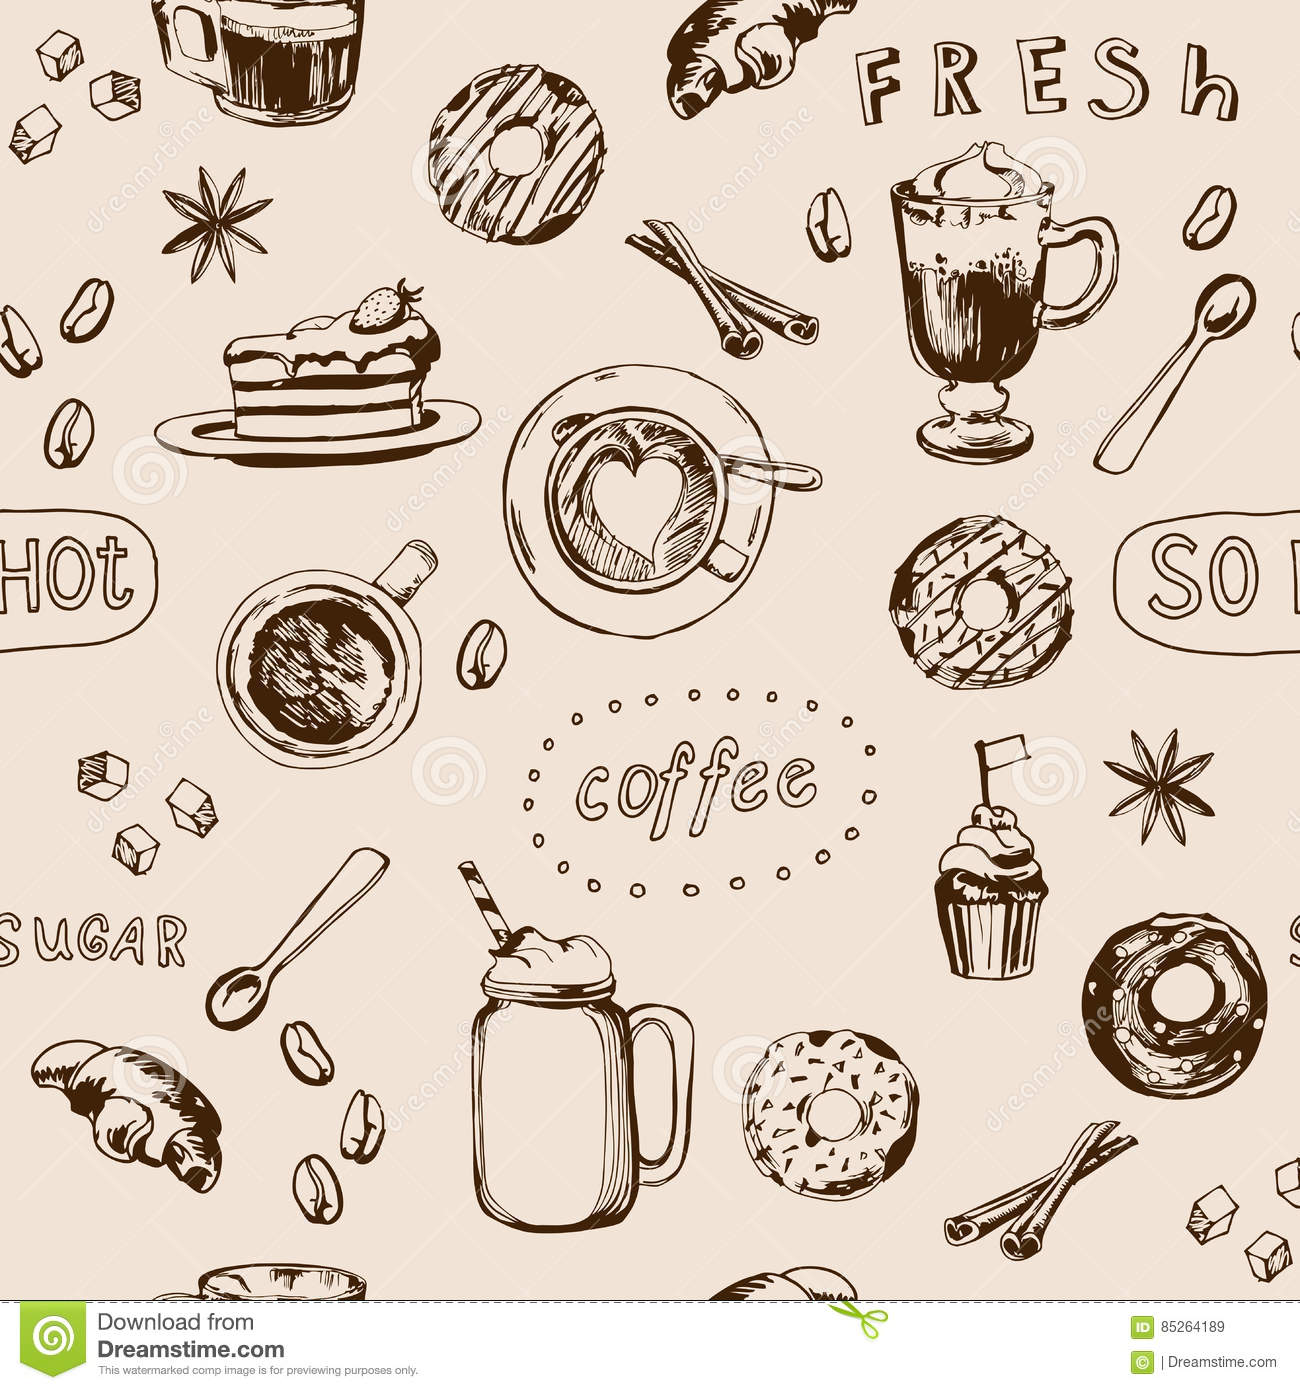 seamless doodle coffee pattern - photo #3